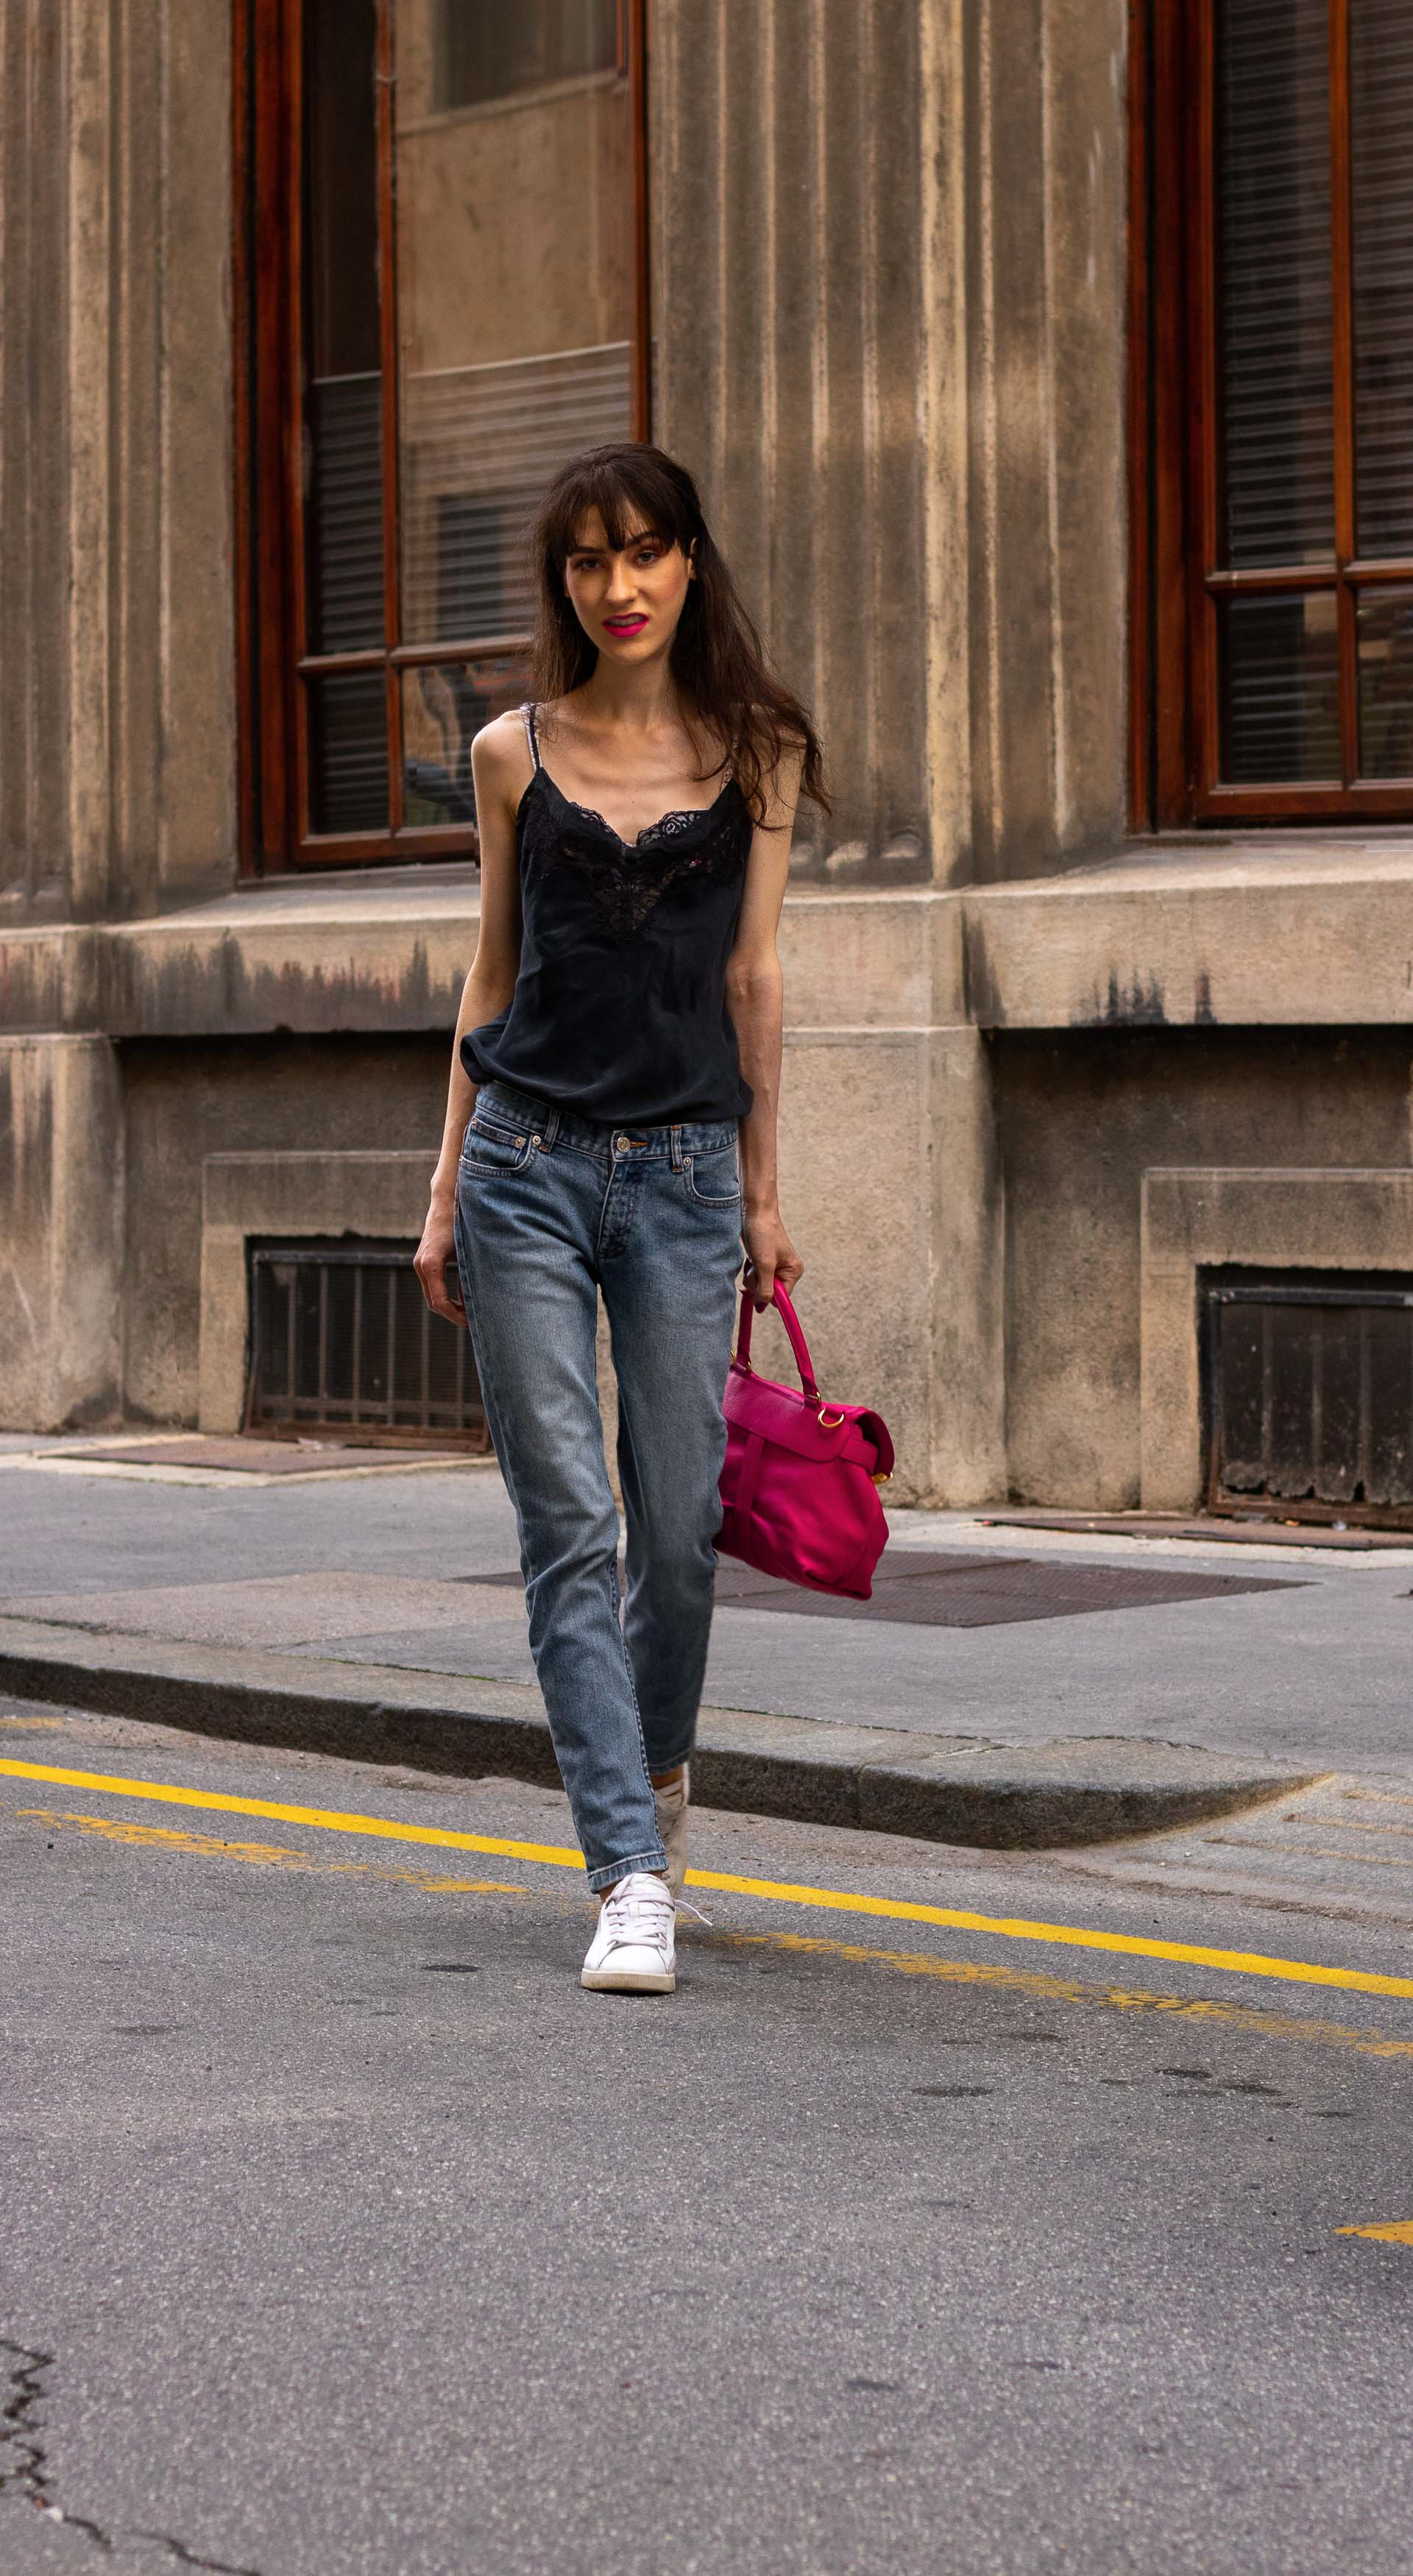 Must follow Fashion Blogger Veronika Lipar of Brunette from Wall Street wearing A.P.C. Paris blue denim jeans Diesel white low sneakers Aubade black slip top pink top handle bag on the street in summer